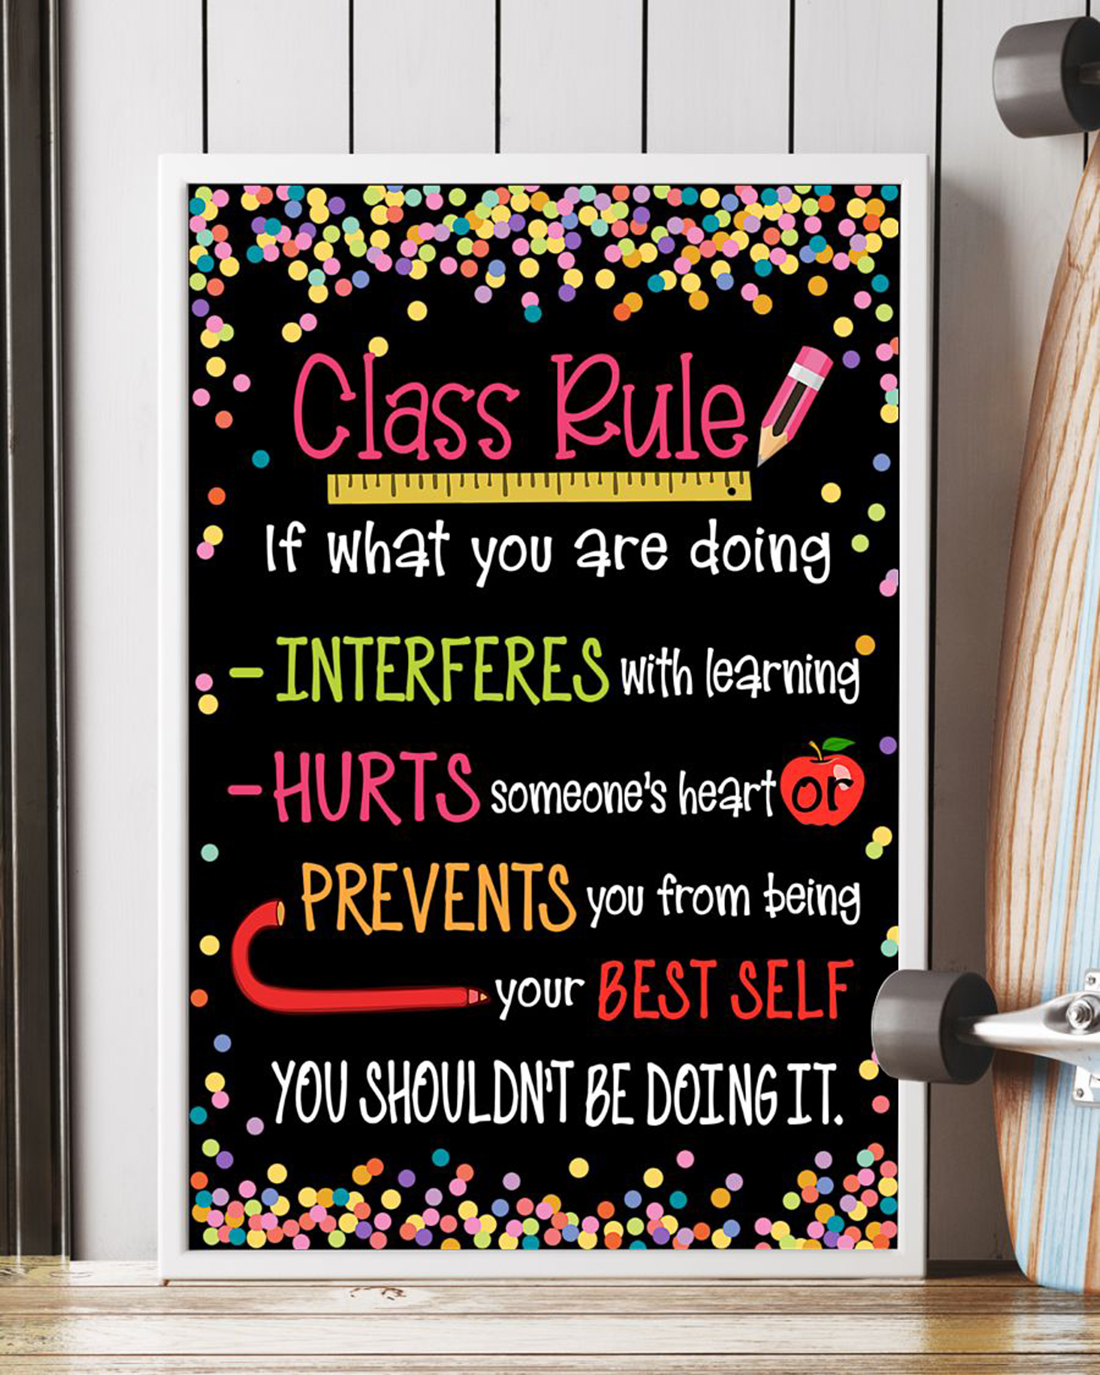 Class rules if what you are doing poster